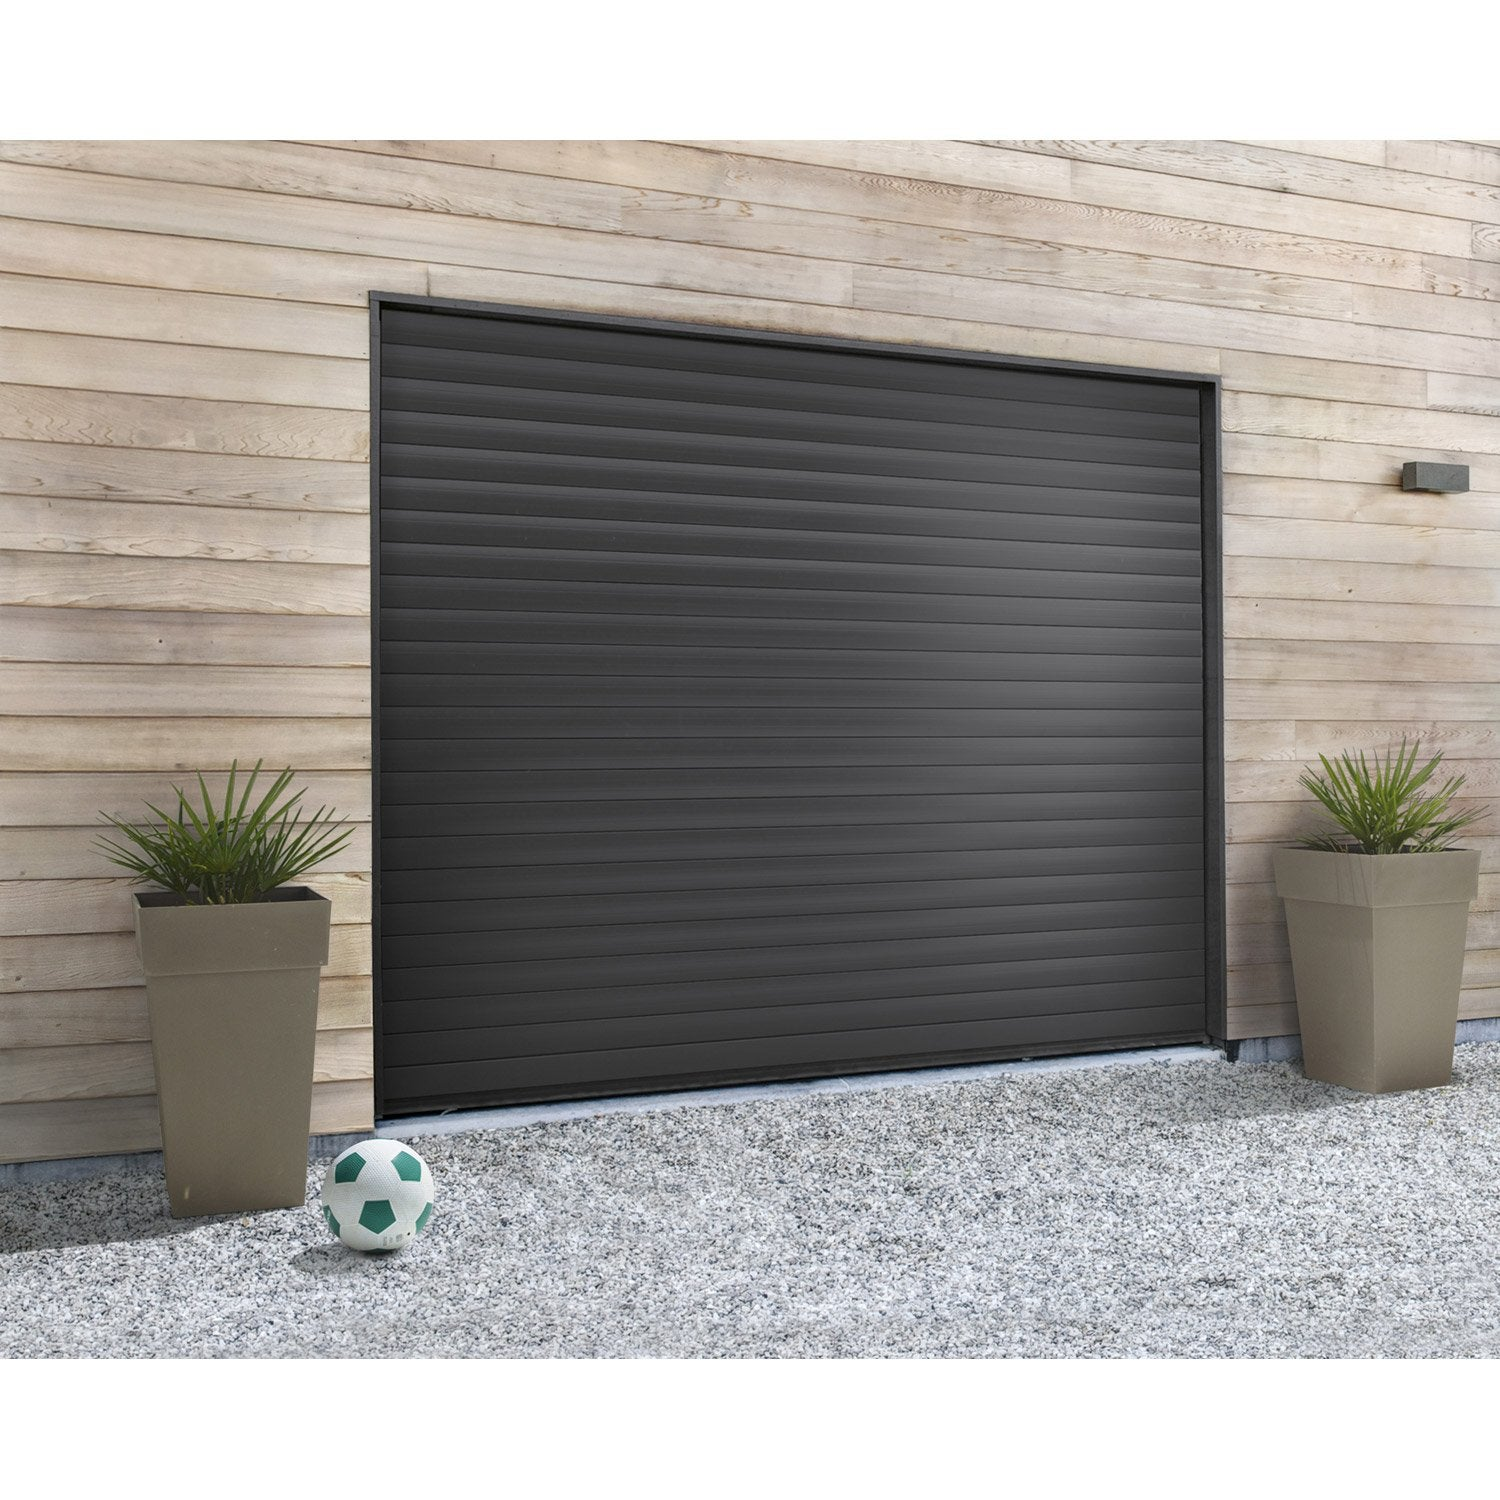 Porte de garage enroulement rollmatic hormann x l for Porte de garage chez leroy merlin